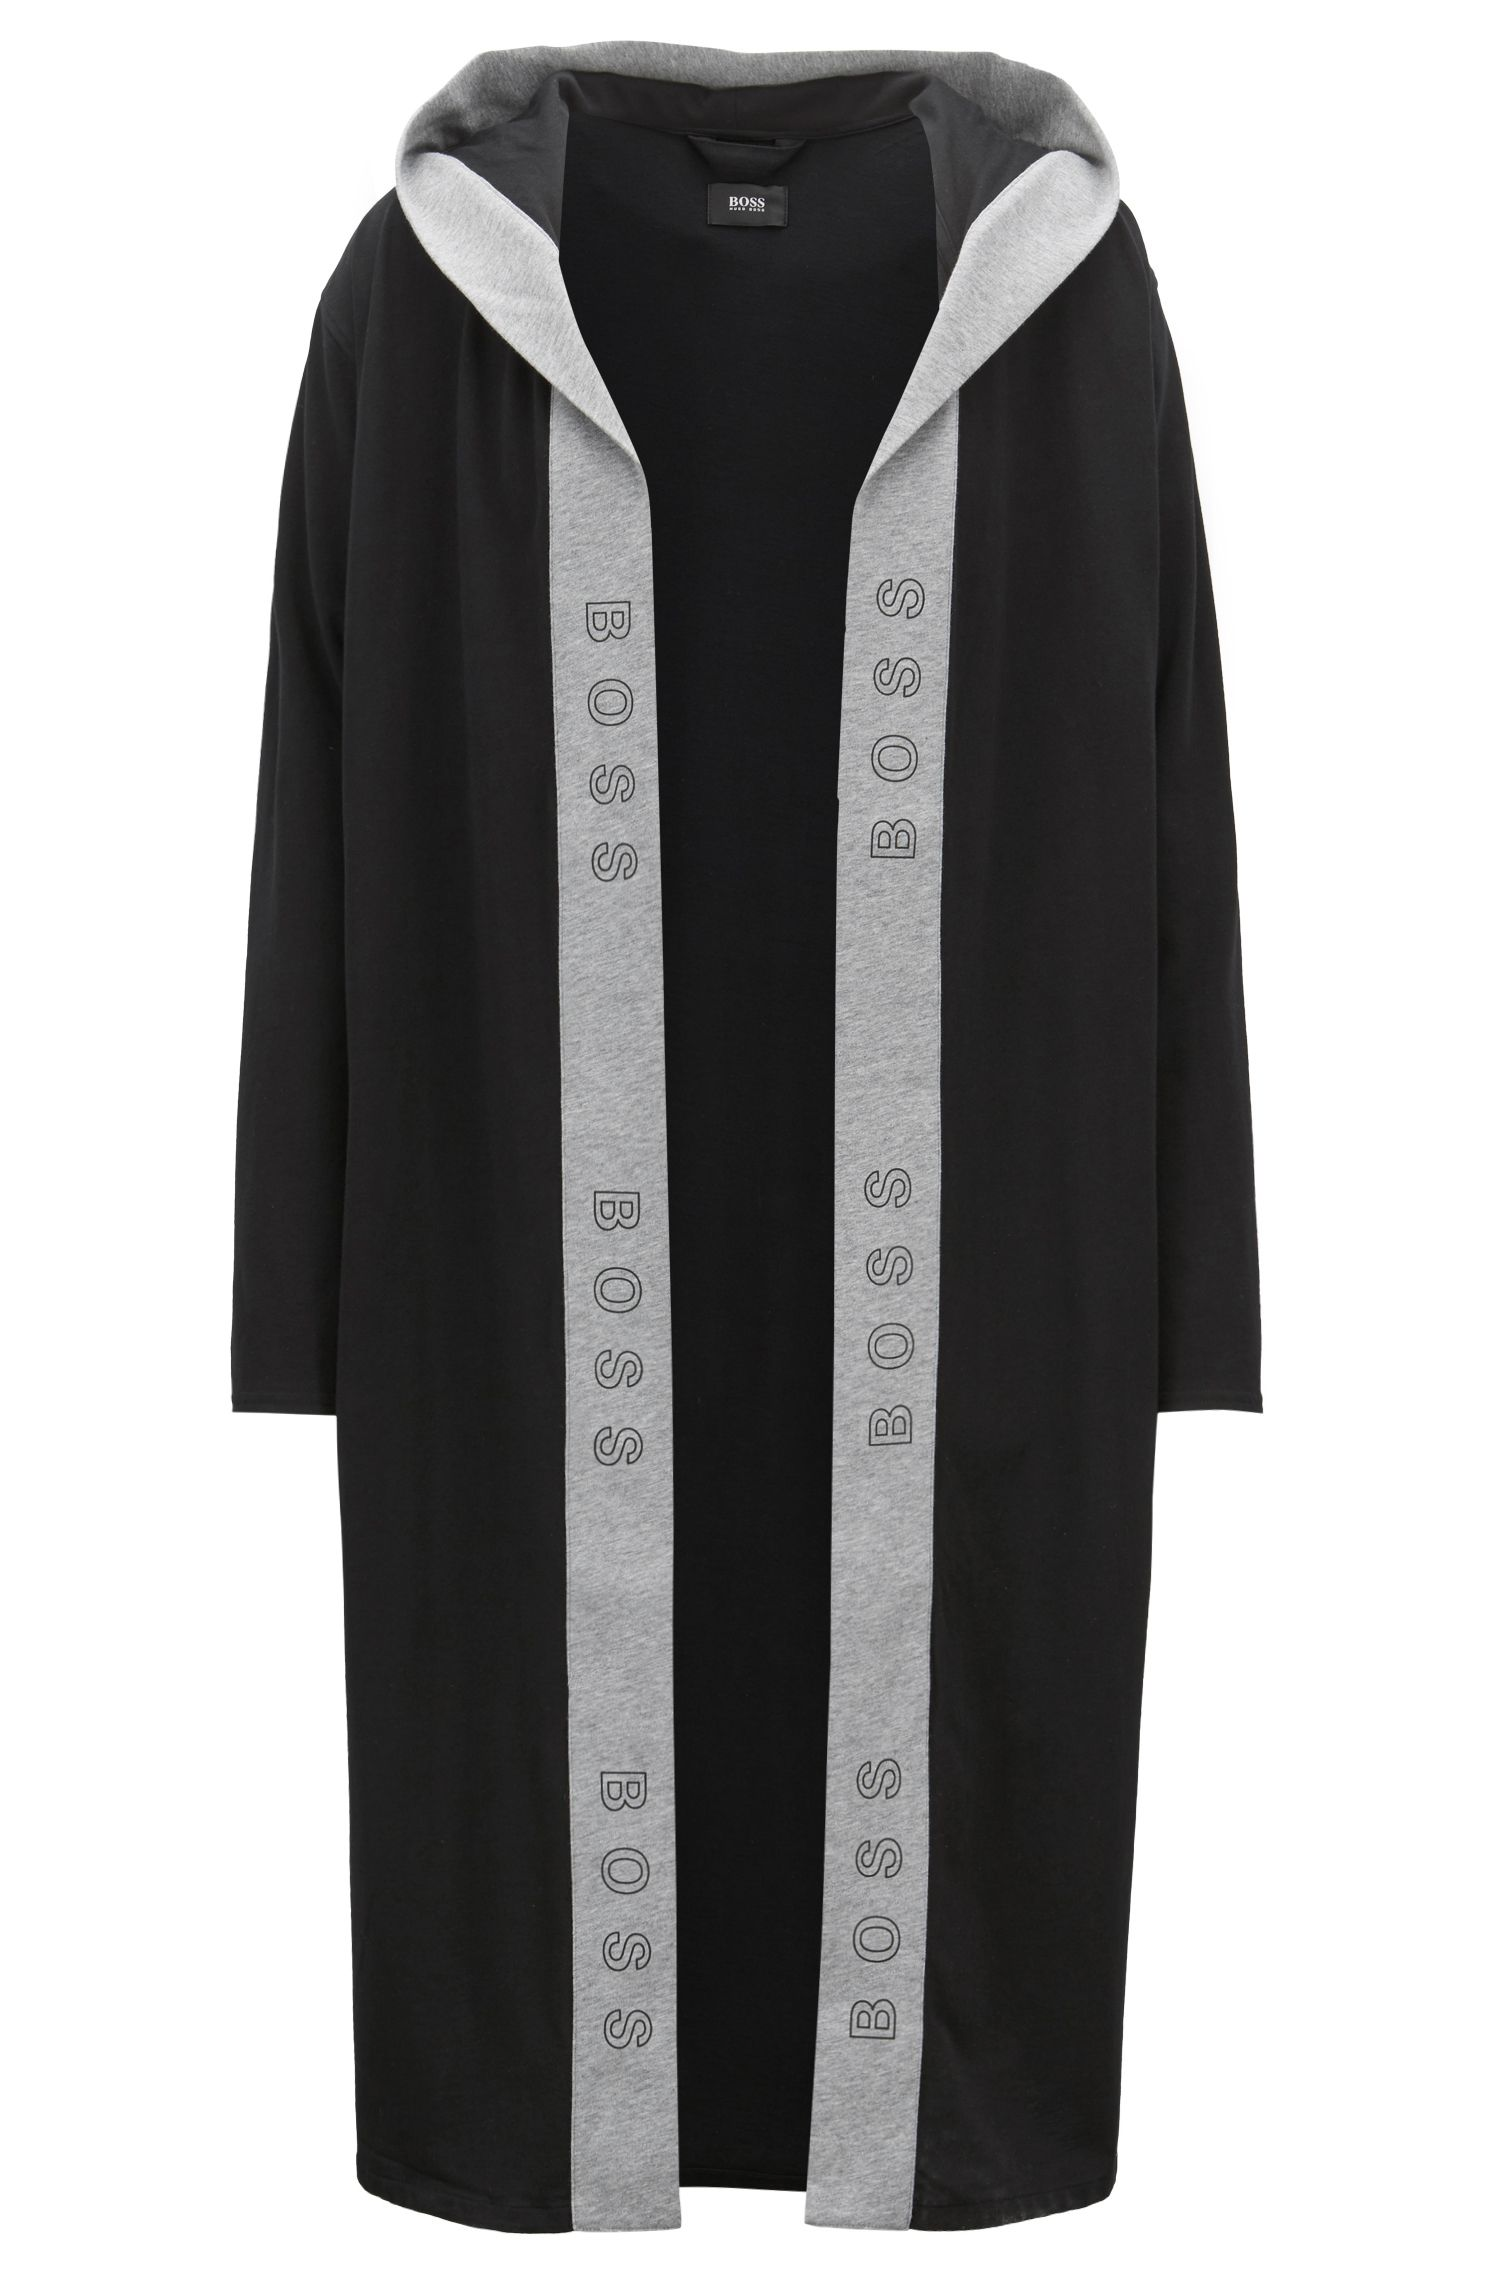 Hooded dressing gown in heavyweight jersey with logo-print trim, Black